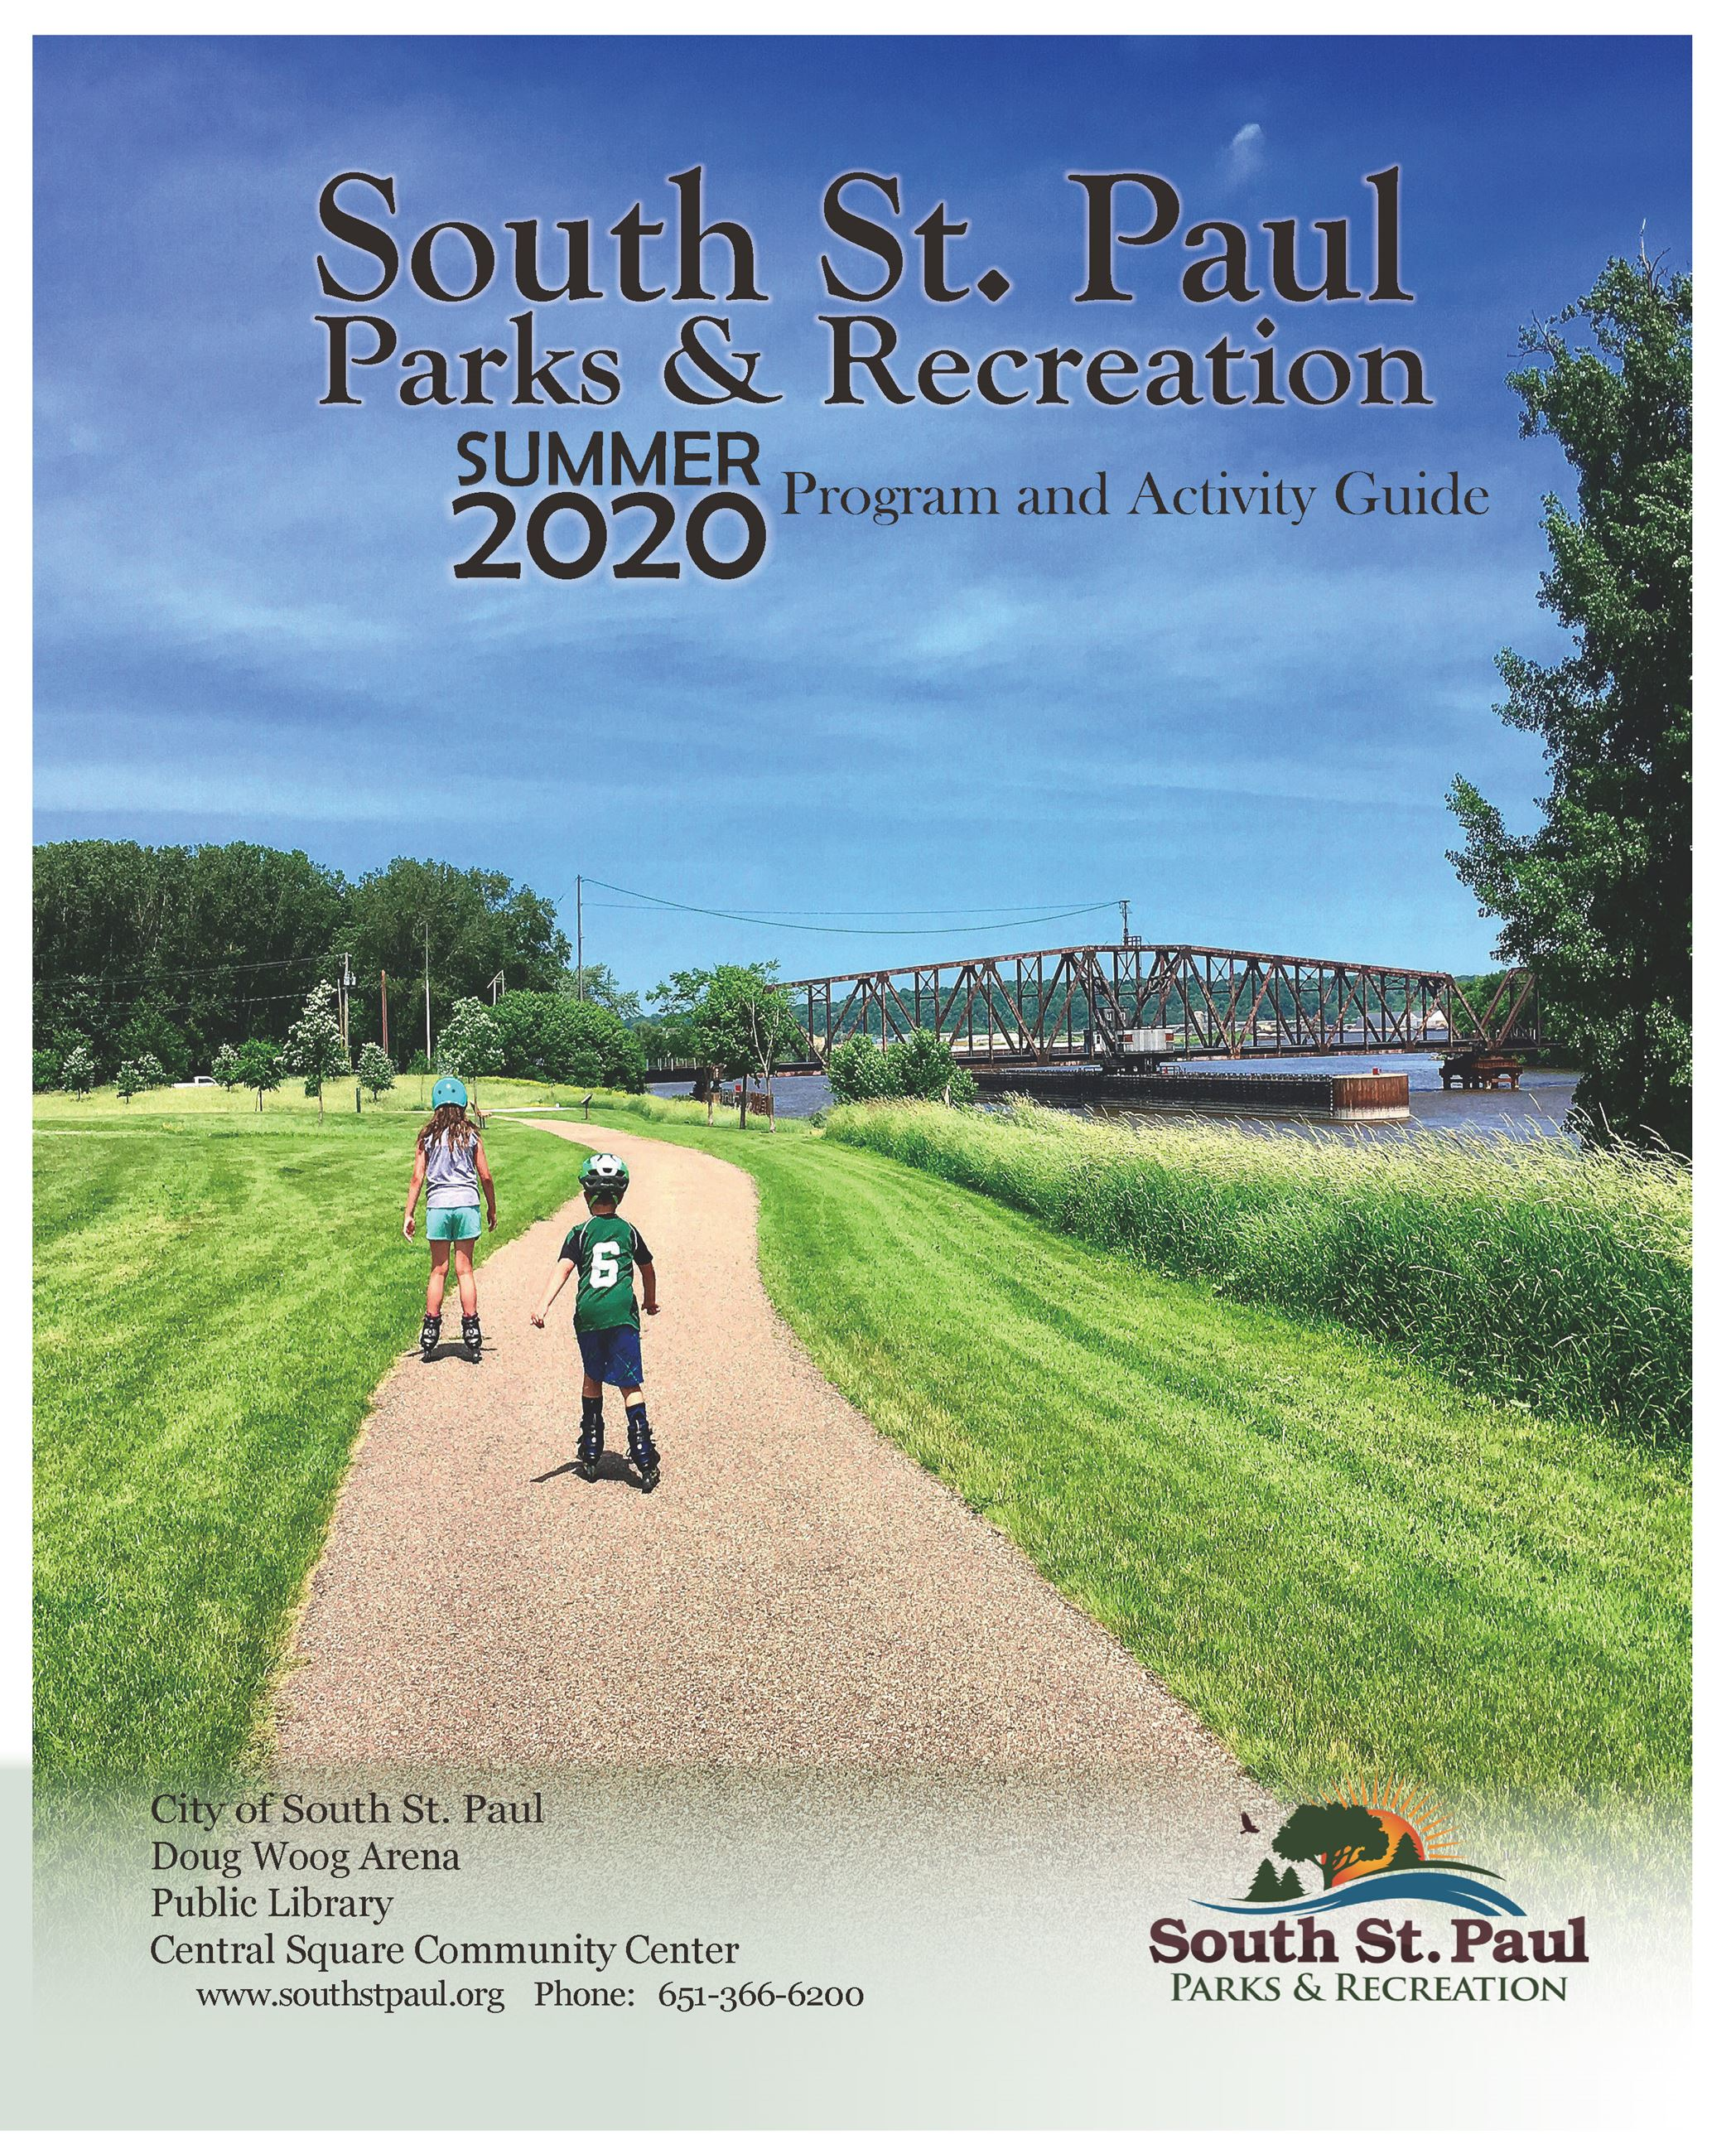 South St. Paul Summer 2020 Brochure Cover Opens in new window